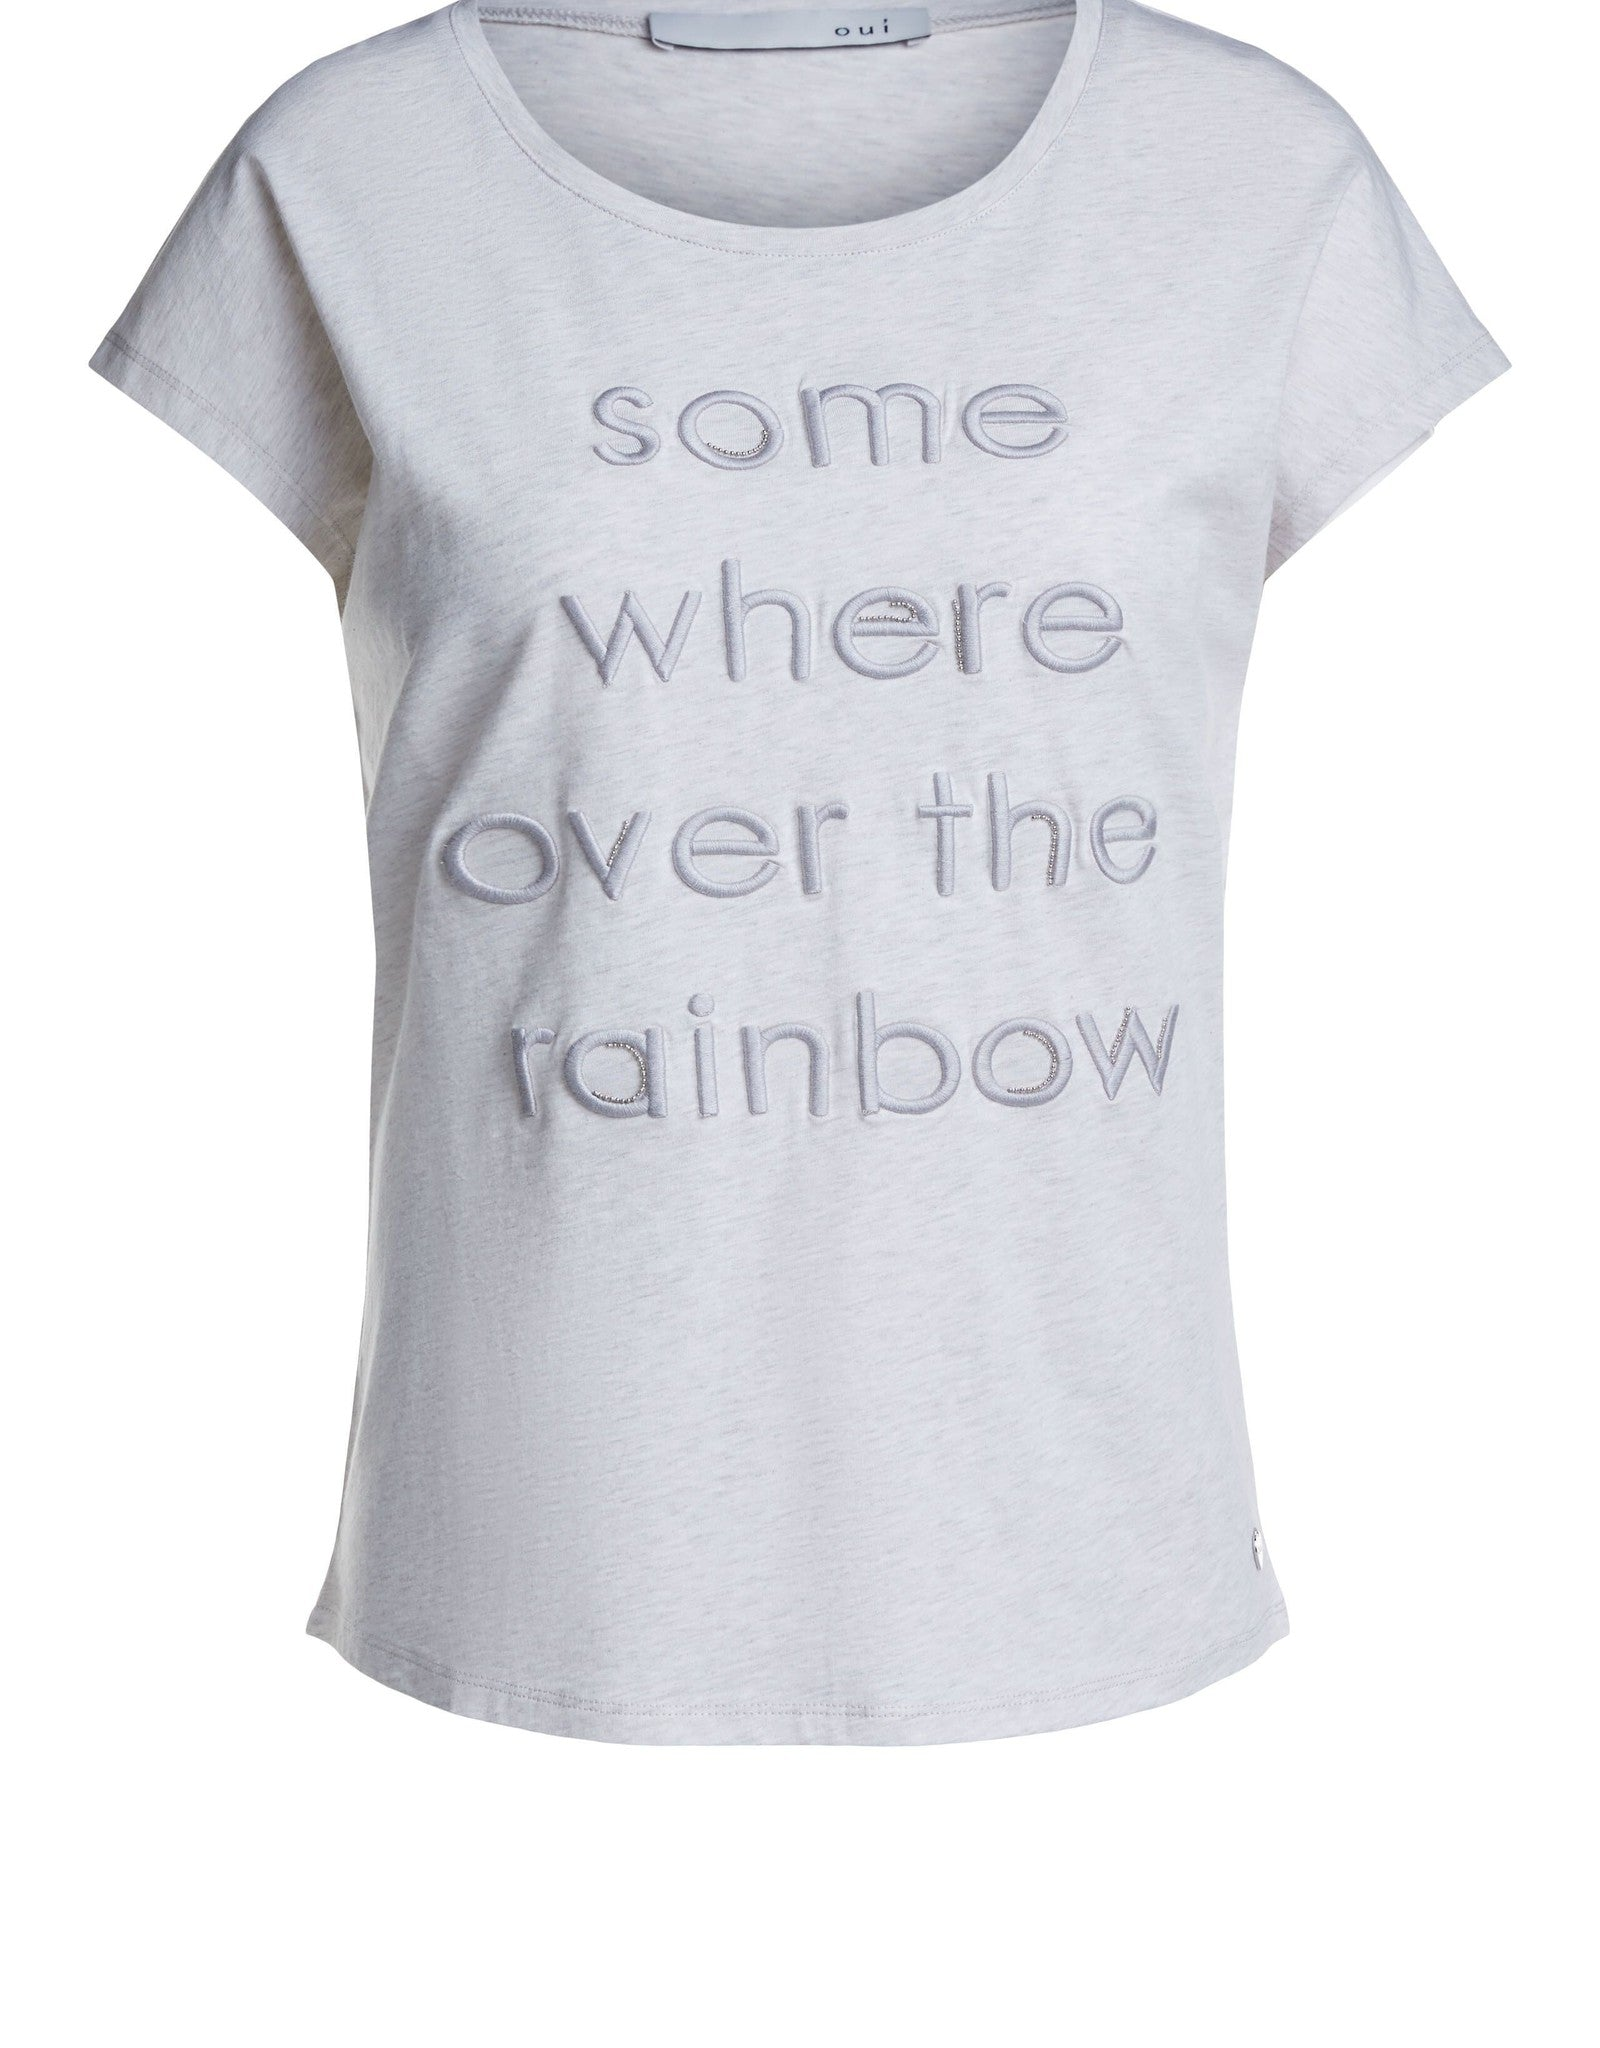 Over The Rainbow Tee Shirt